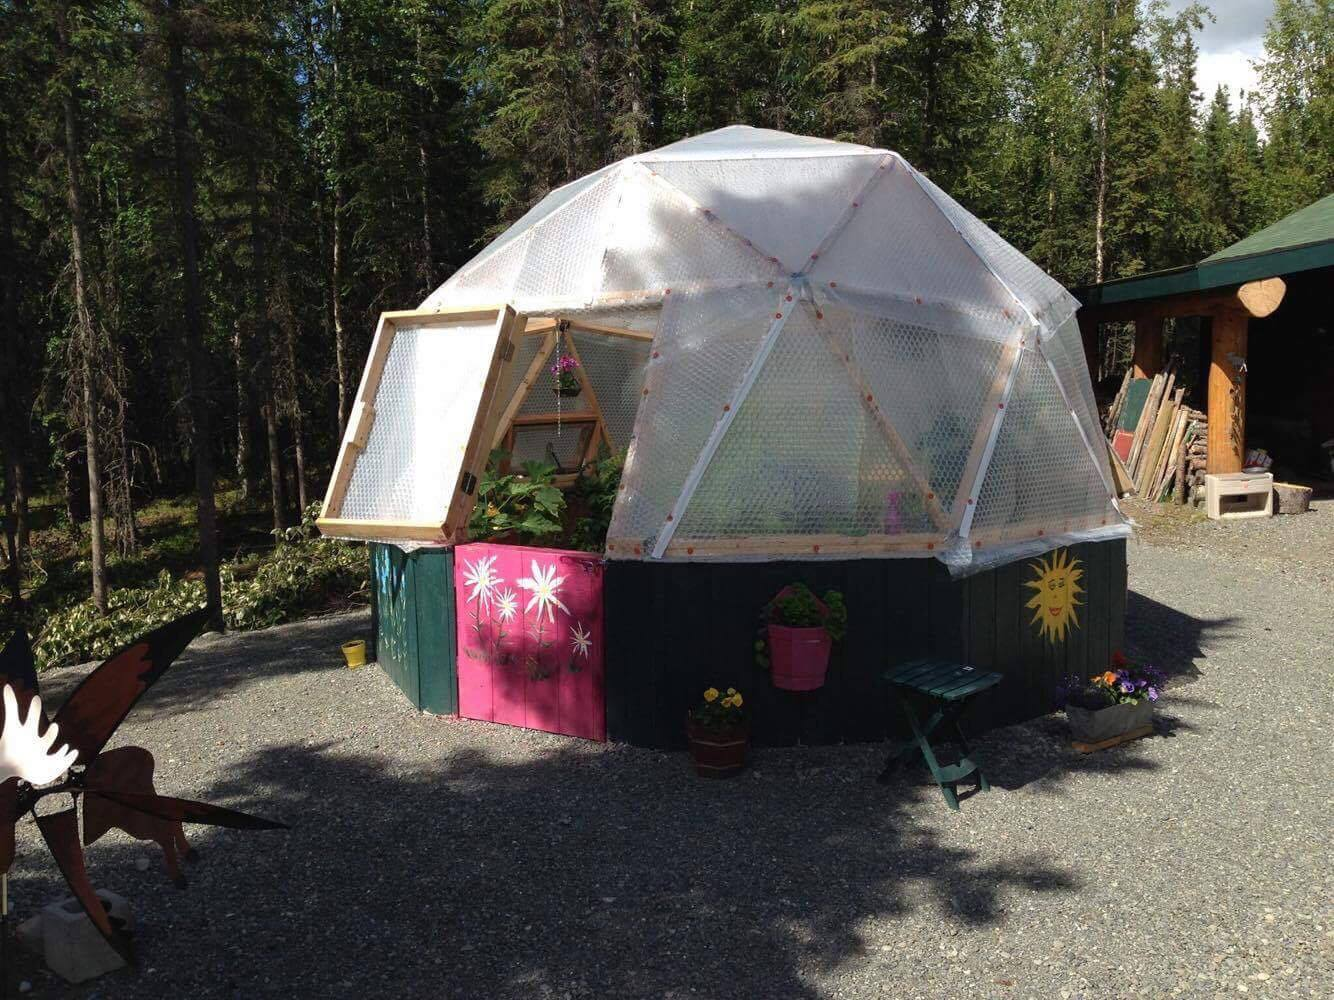 15 Foot Dome